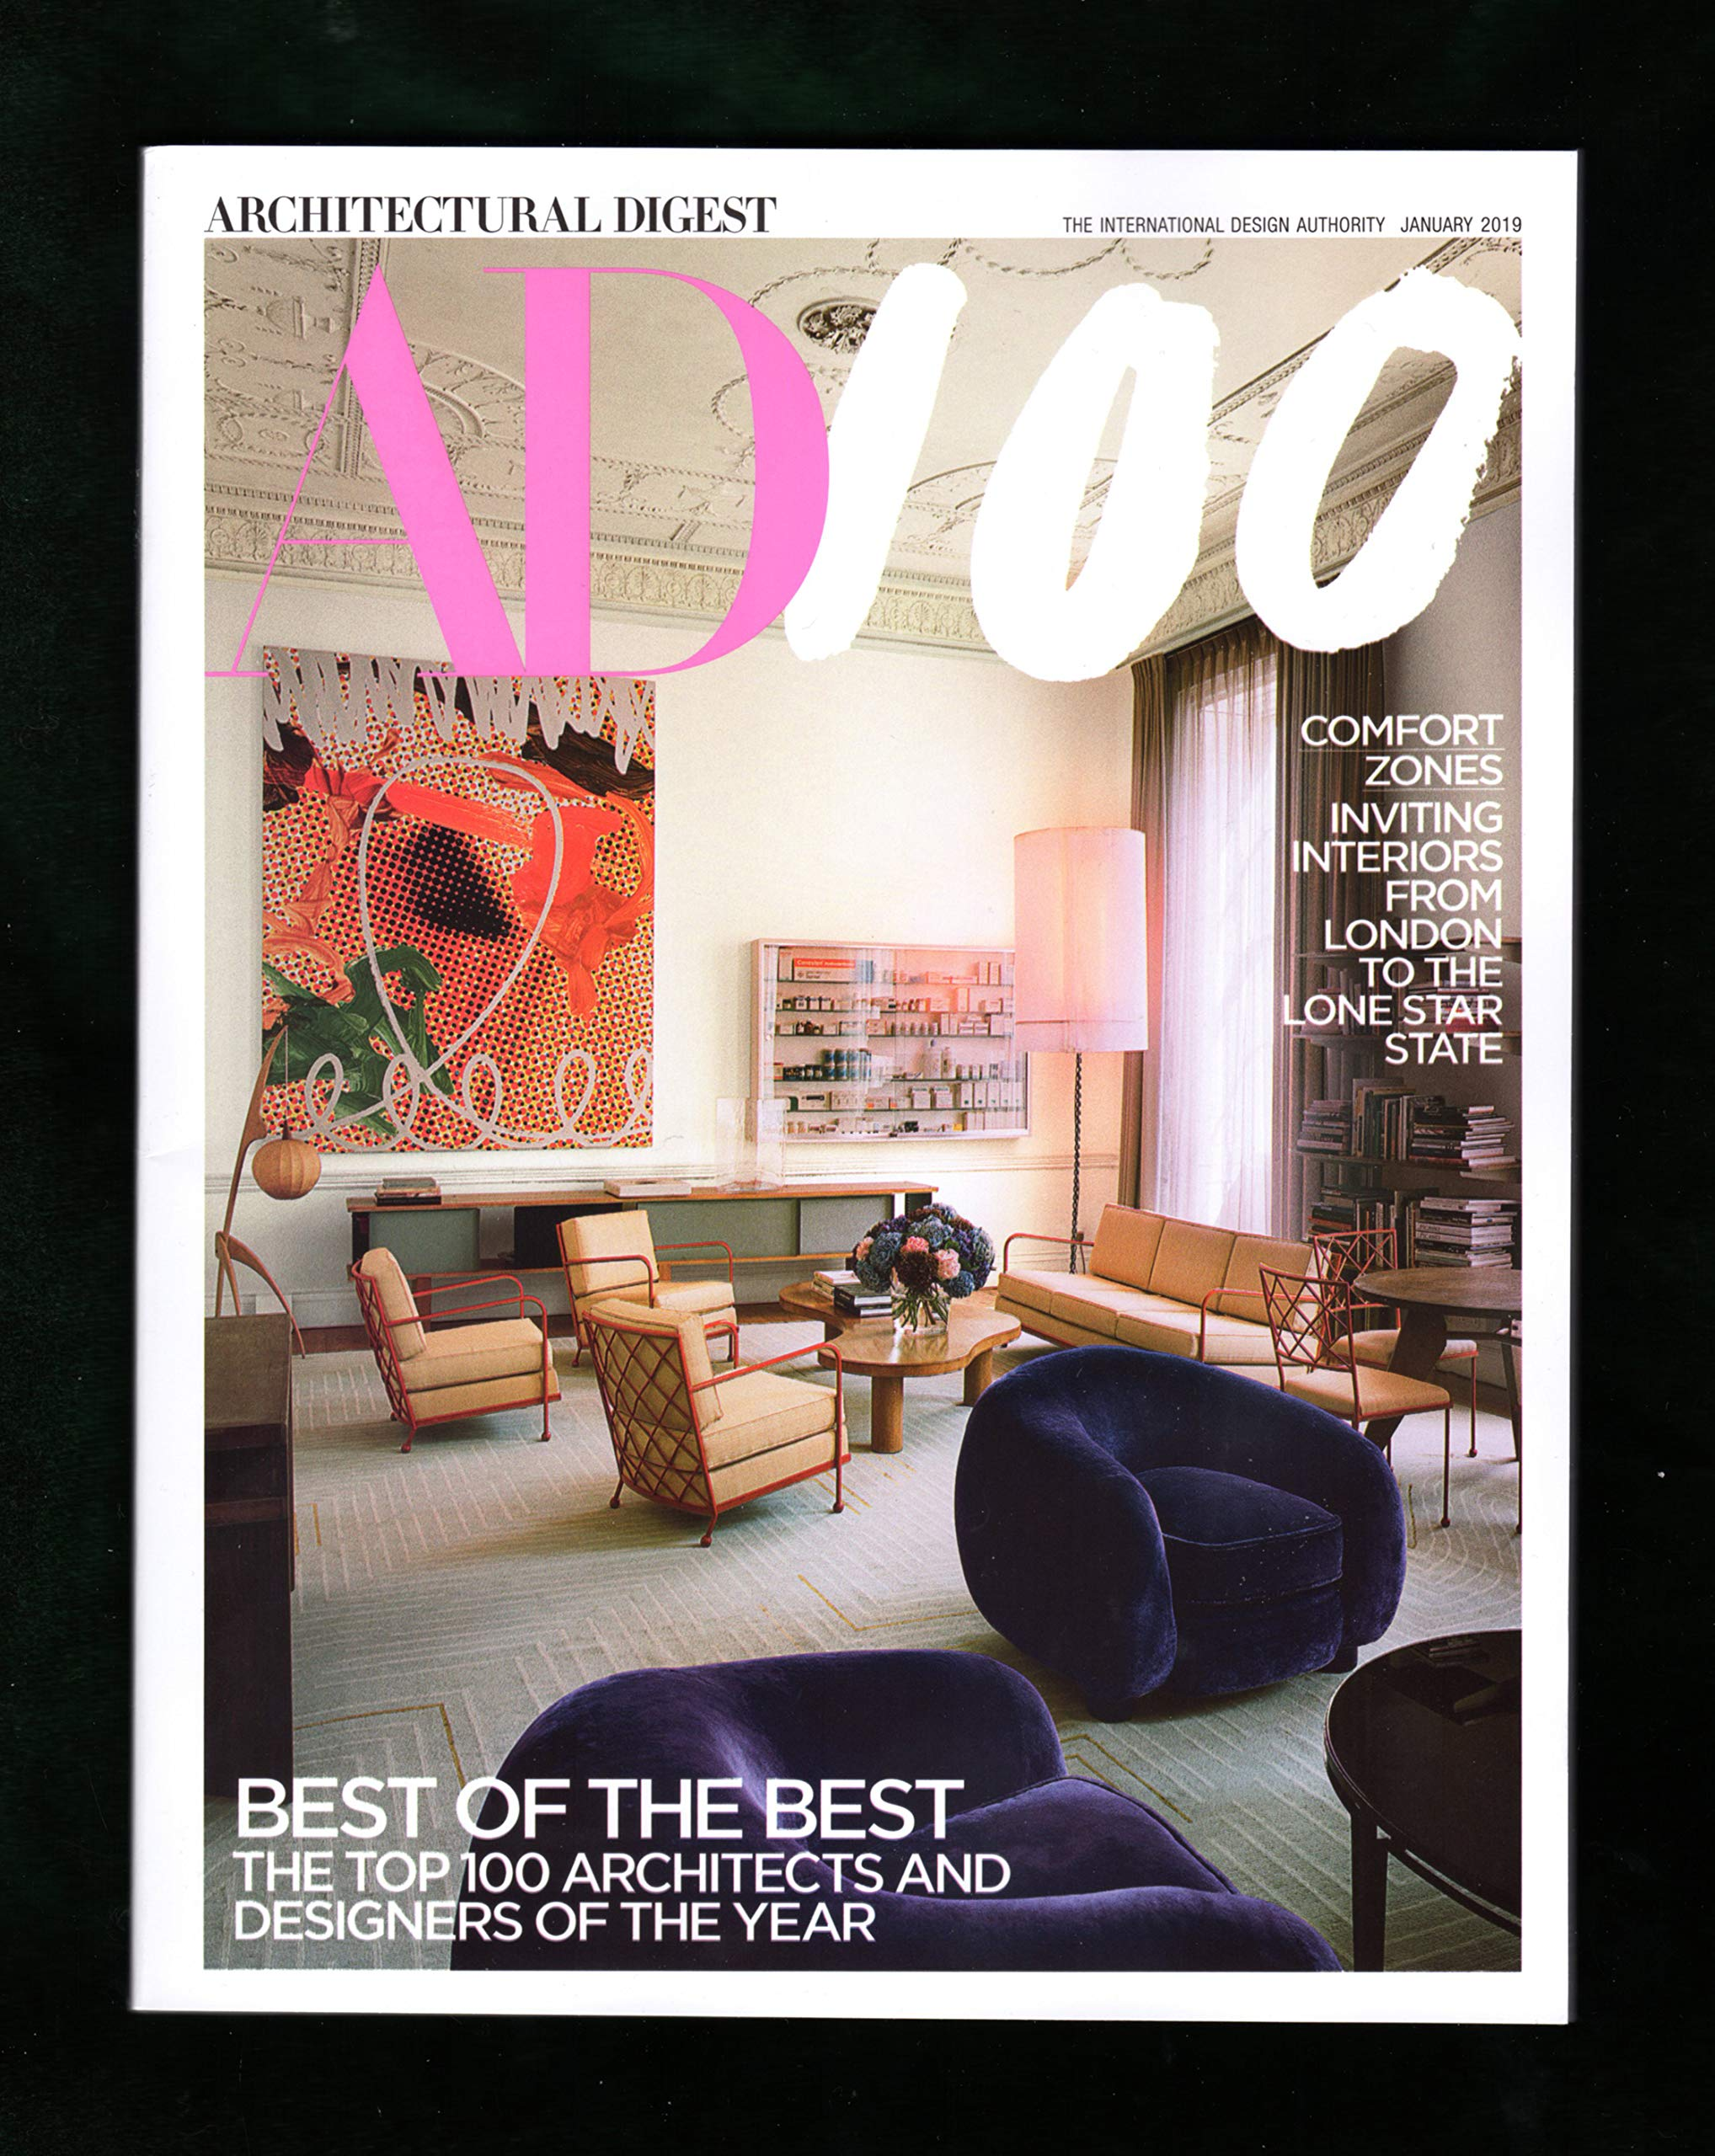 Architectural Digest Magazine January 2019 Ad 100 Best Of The Best The Top 100 Architects Designers Of The Year Amazon Com Books